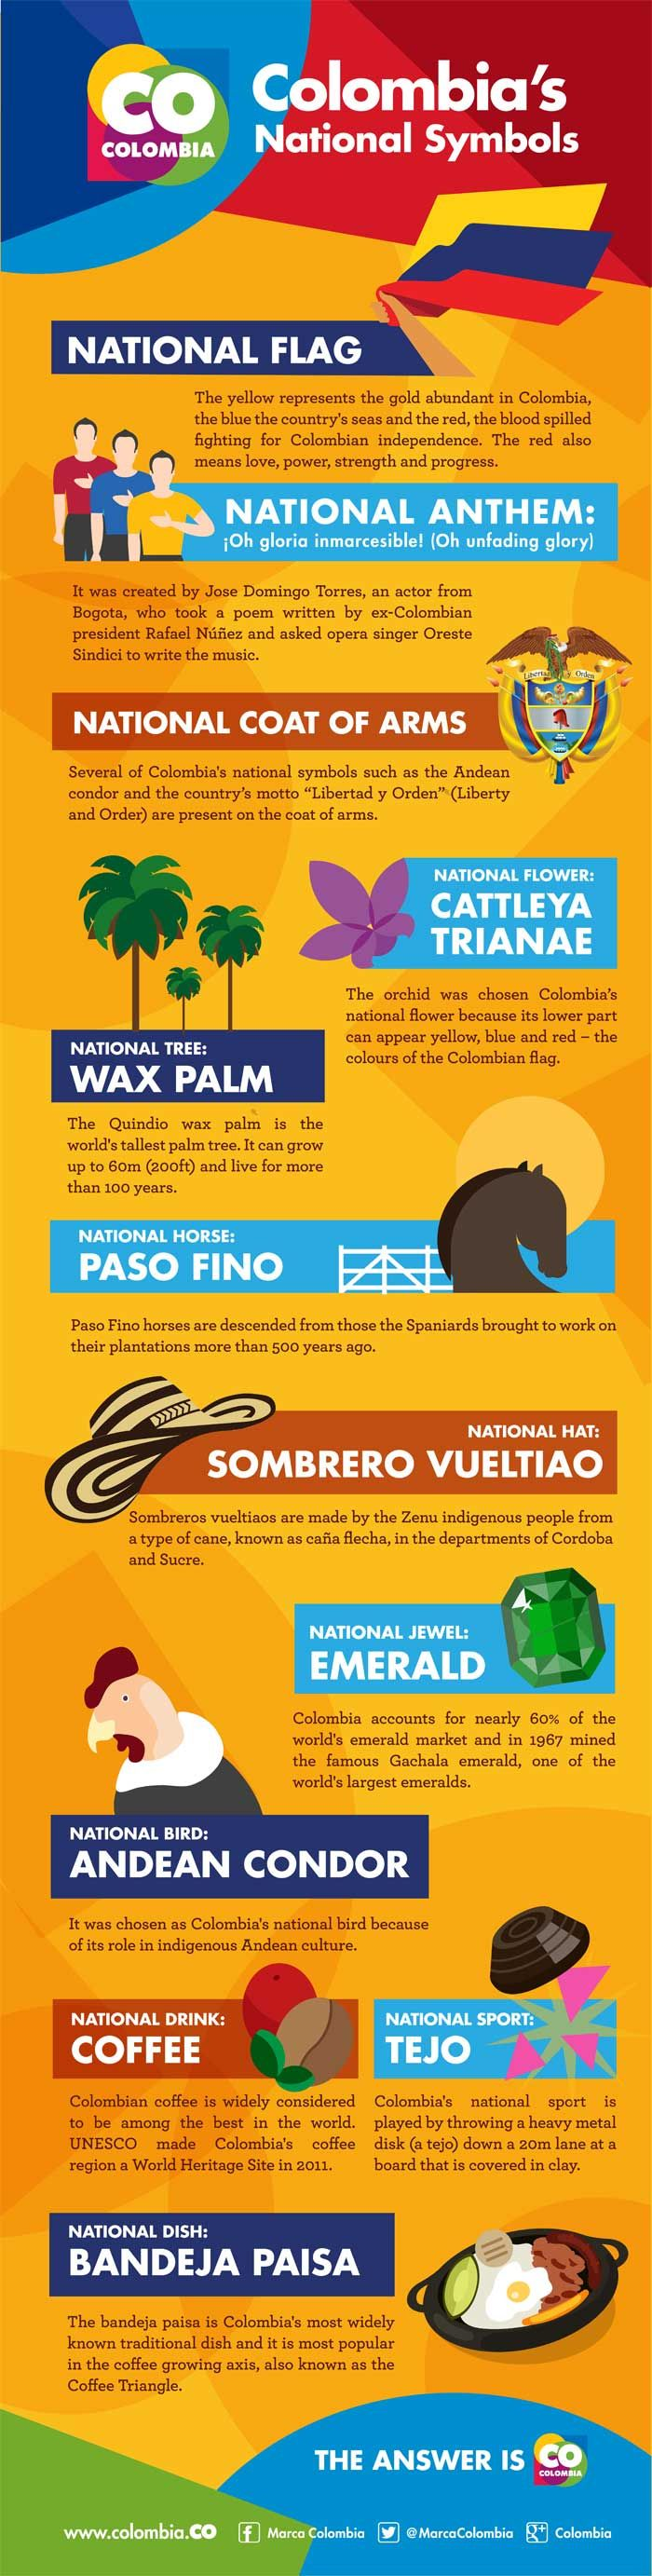 Colombia's National Symbols